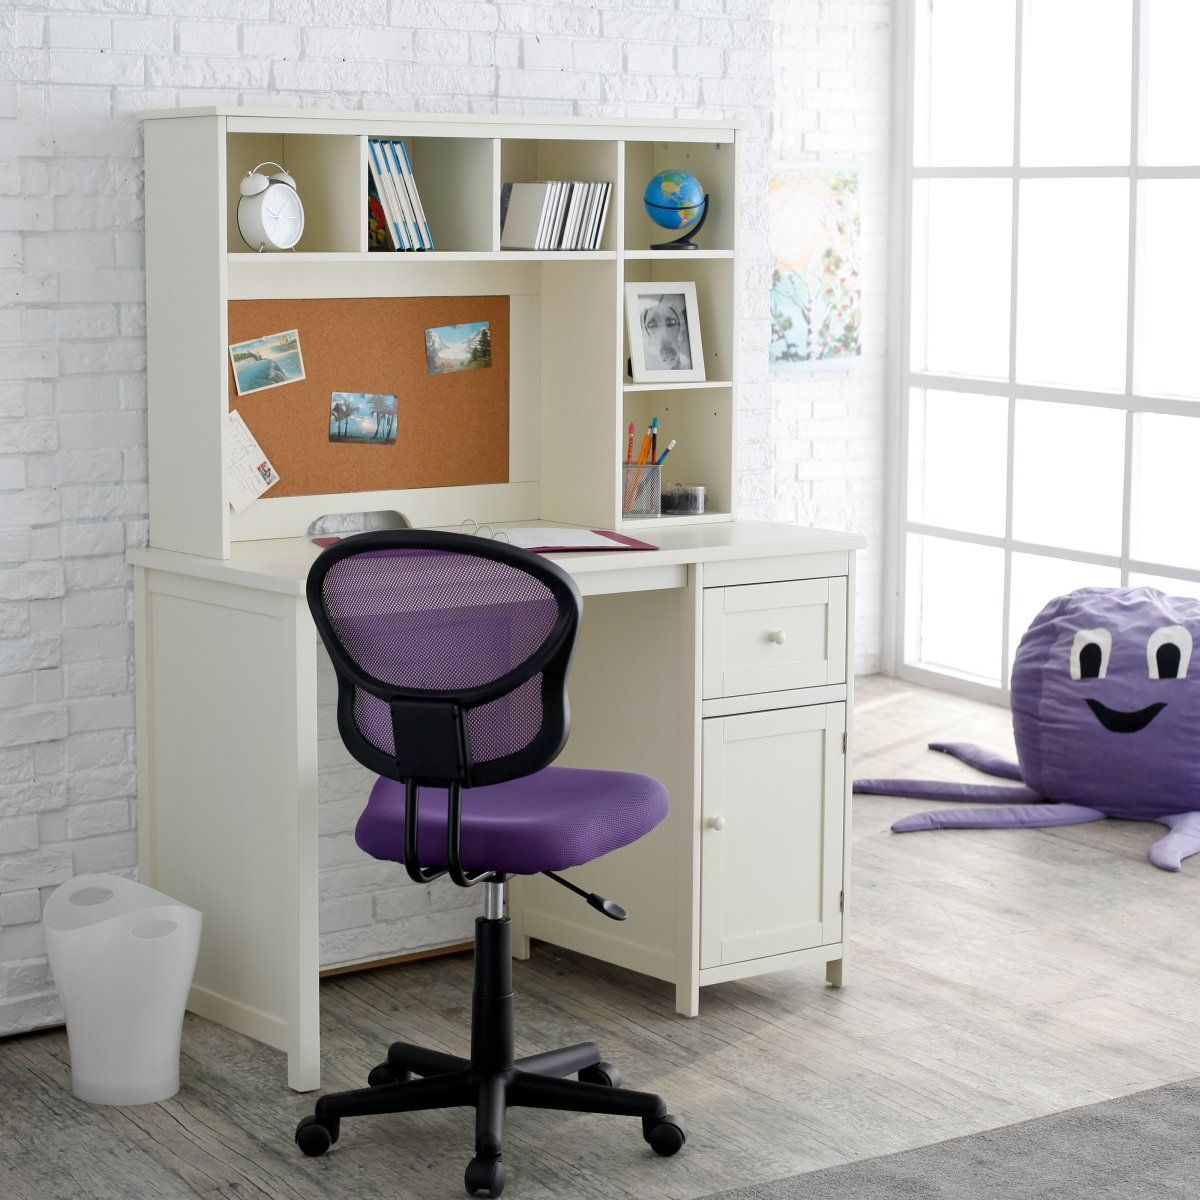 Superior Piper Student Desk With Optional Hutch Set VanillaPiper Student Desk With  Optional Hutch Set Vanilla Haleys